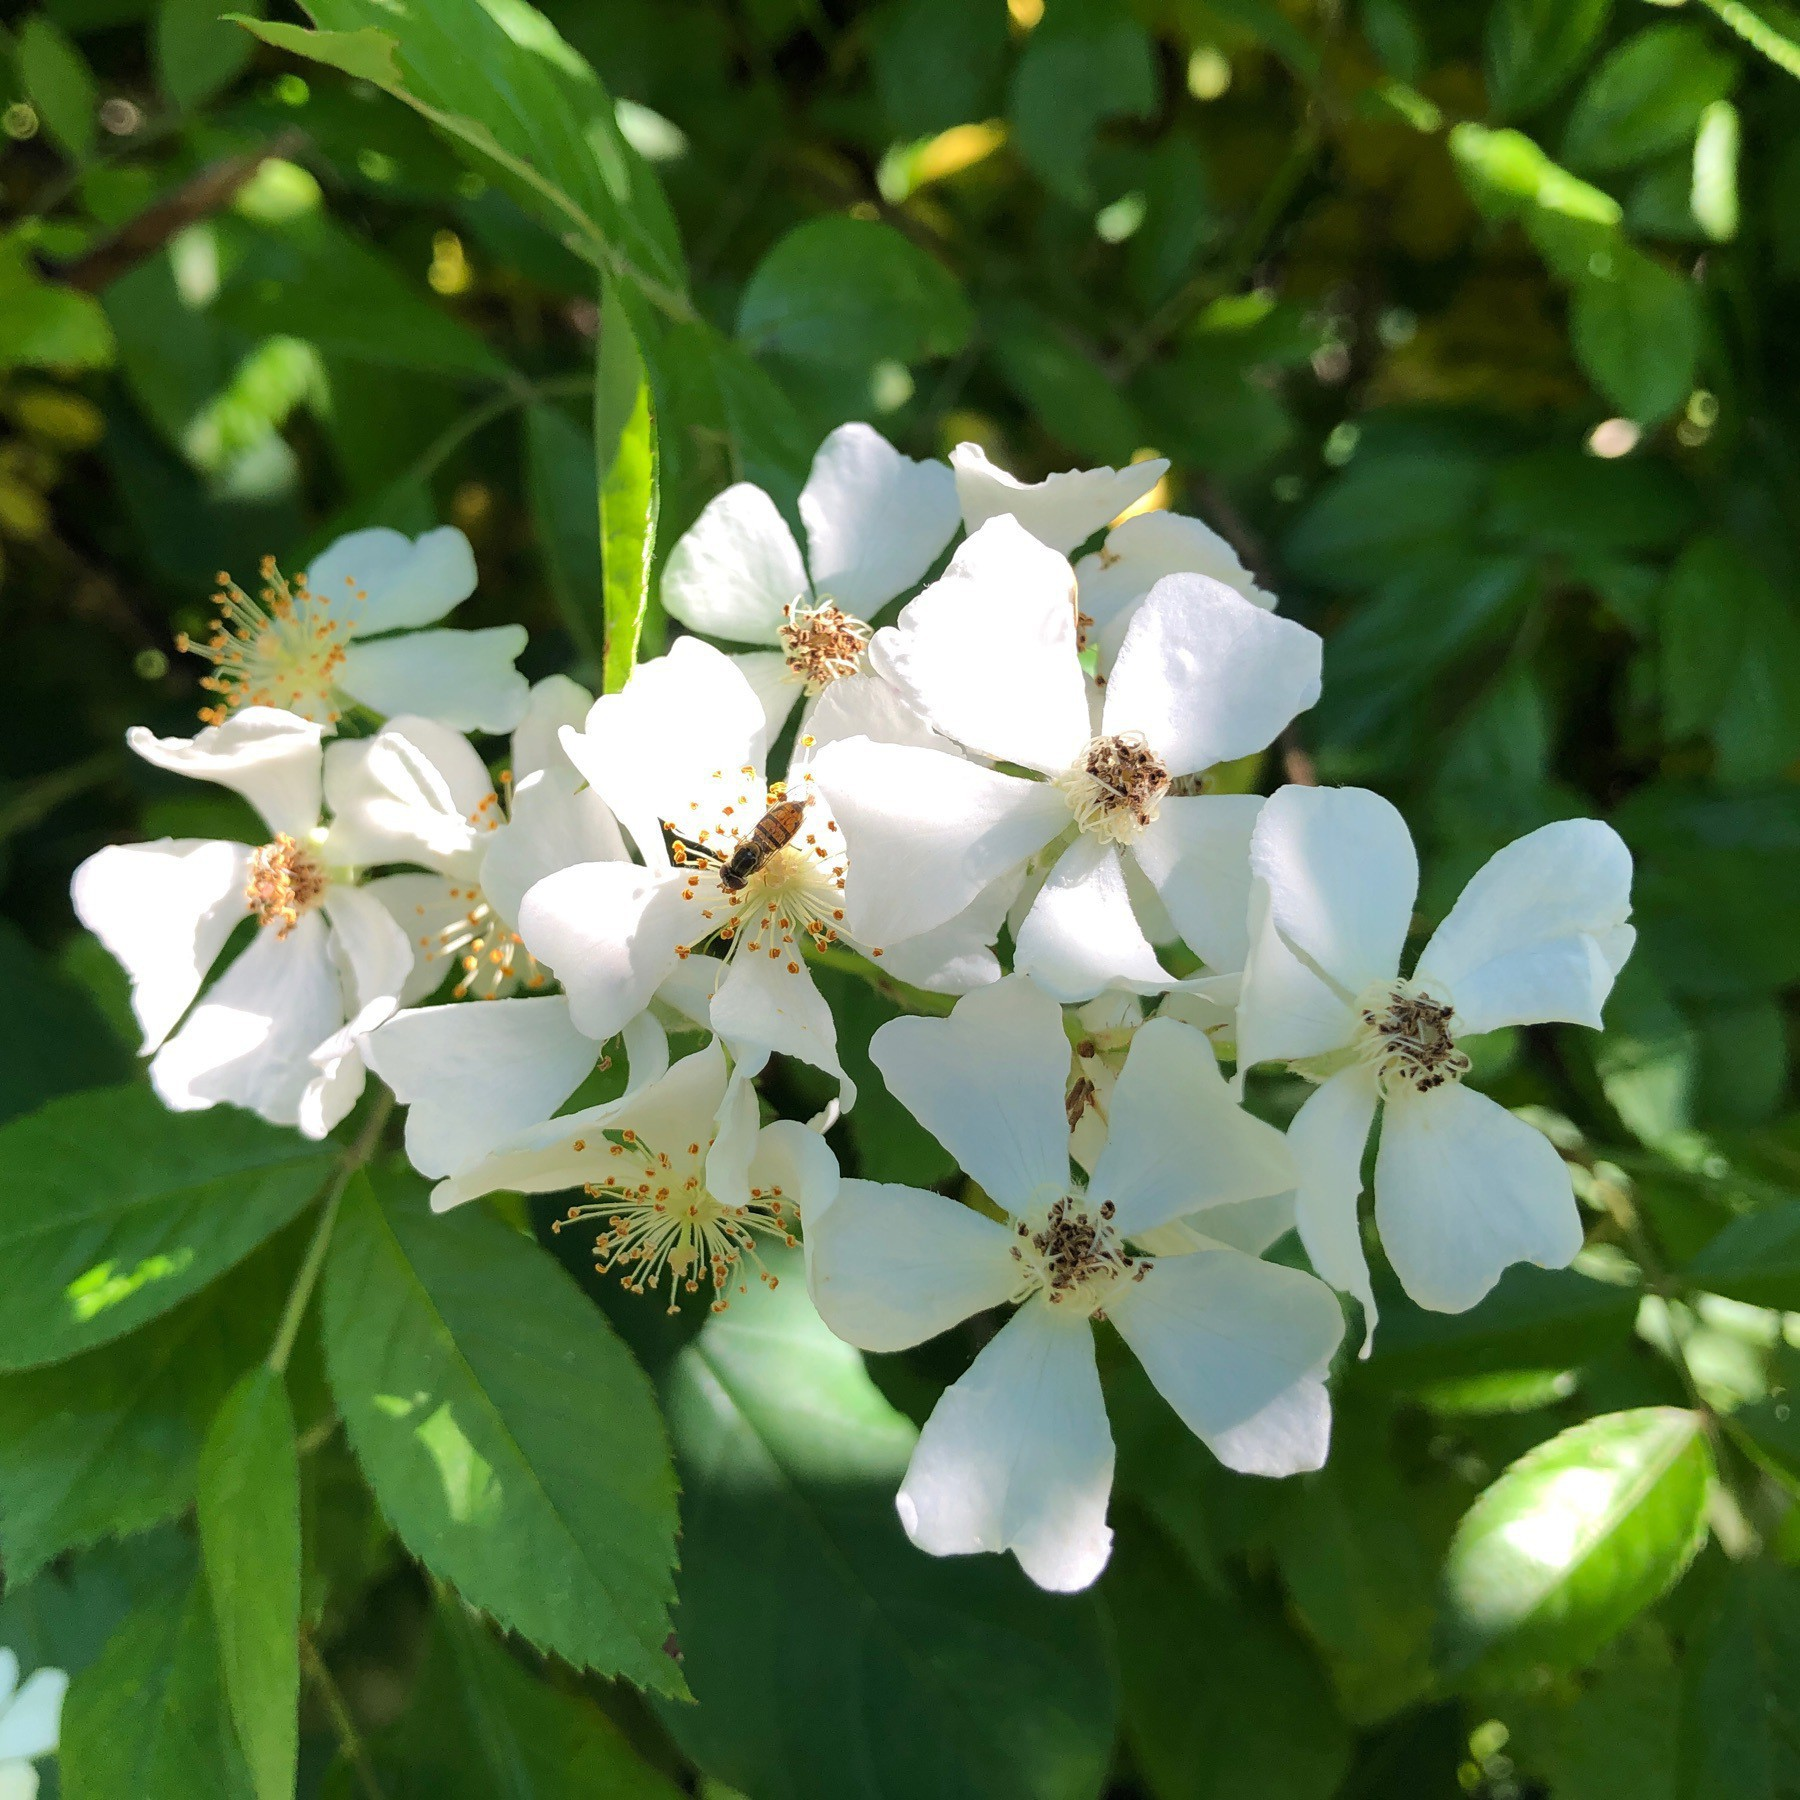 Small white flowers on a bush.